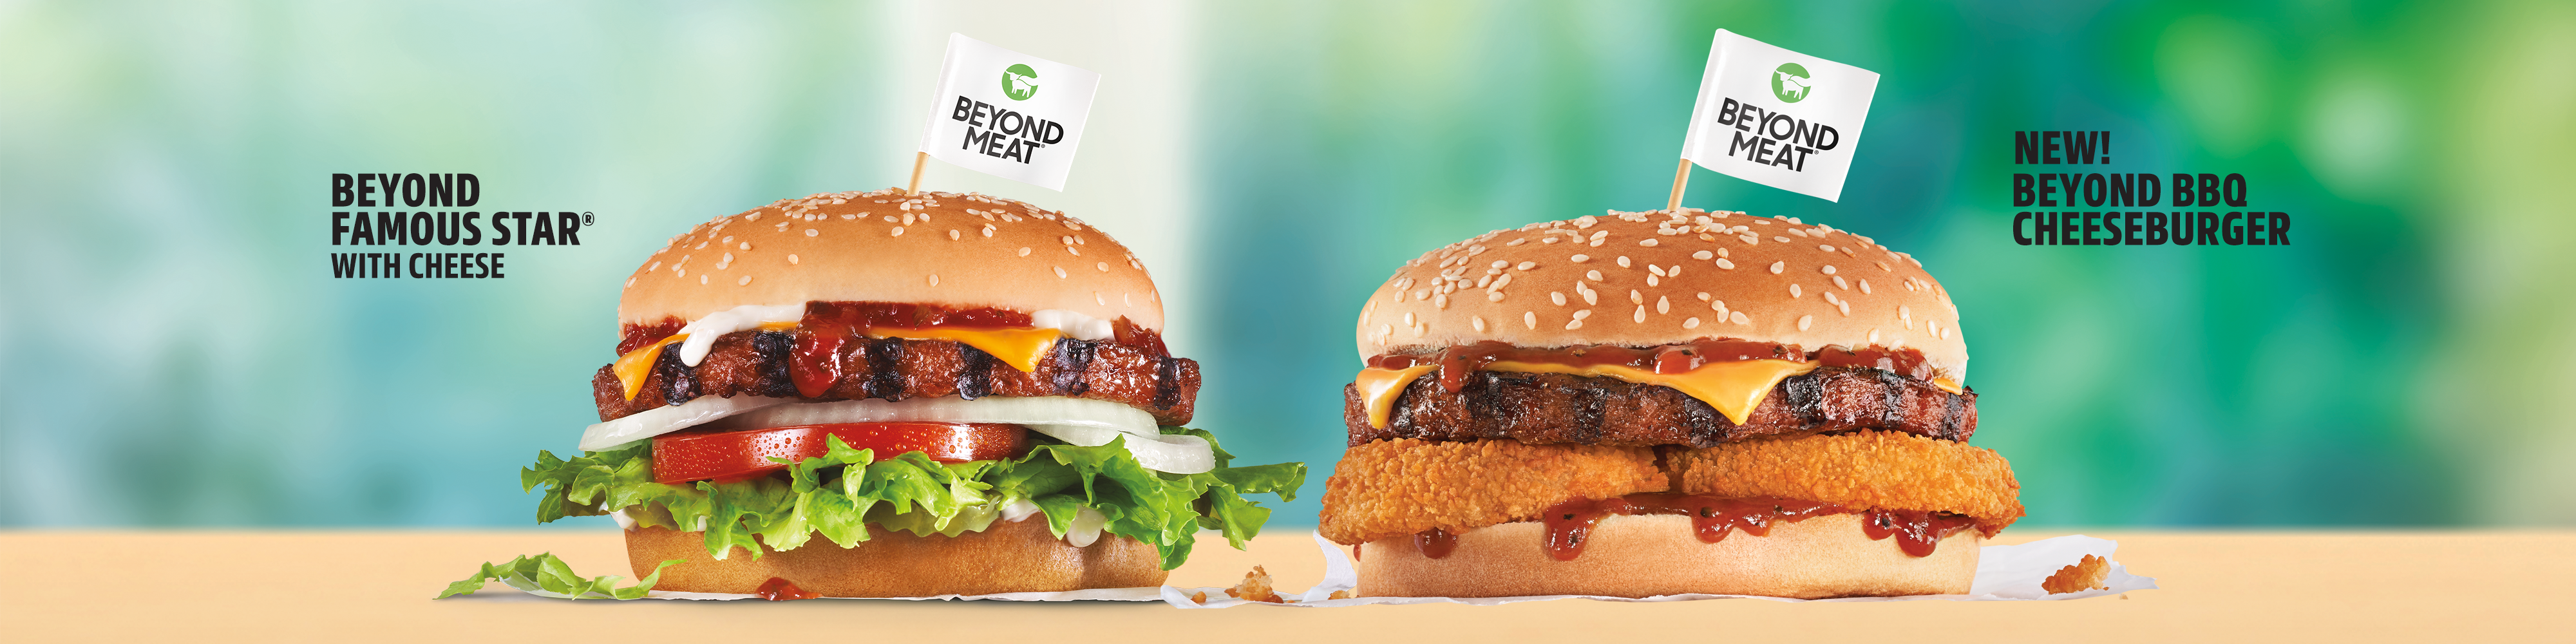 Carl's Jr. Beyond Famous Star® with Cheese